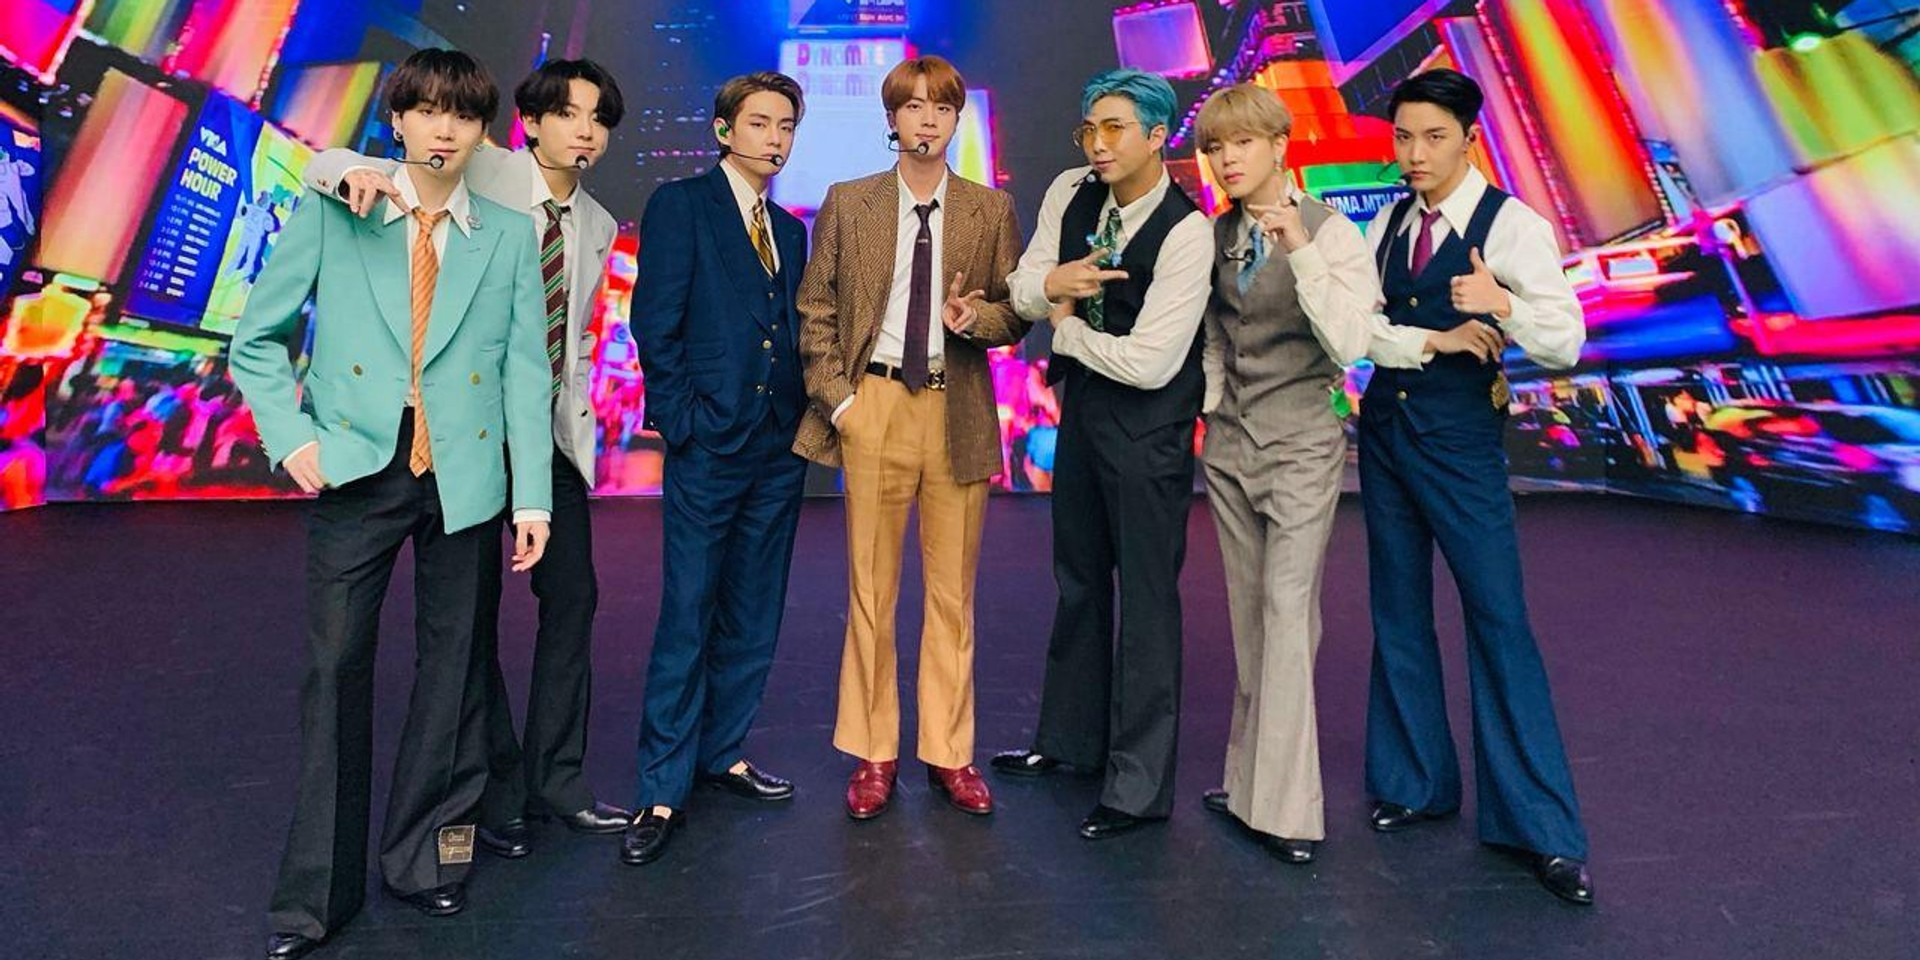 BTS smash hit 'Dynamite' projected to generate US$1.4 billion for South Korea's economy